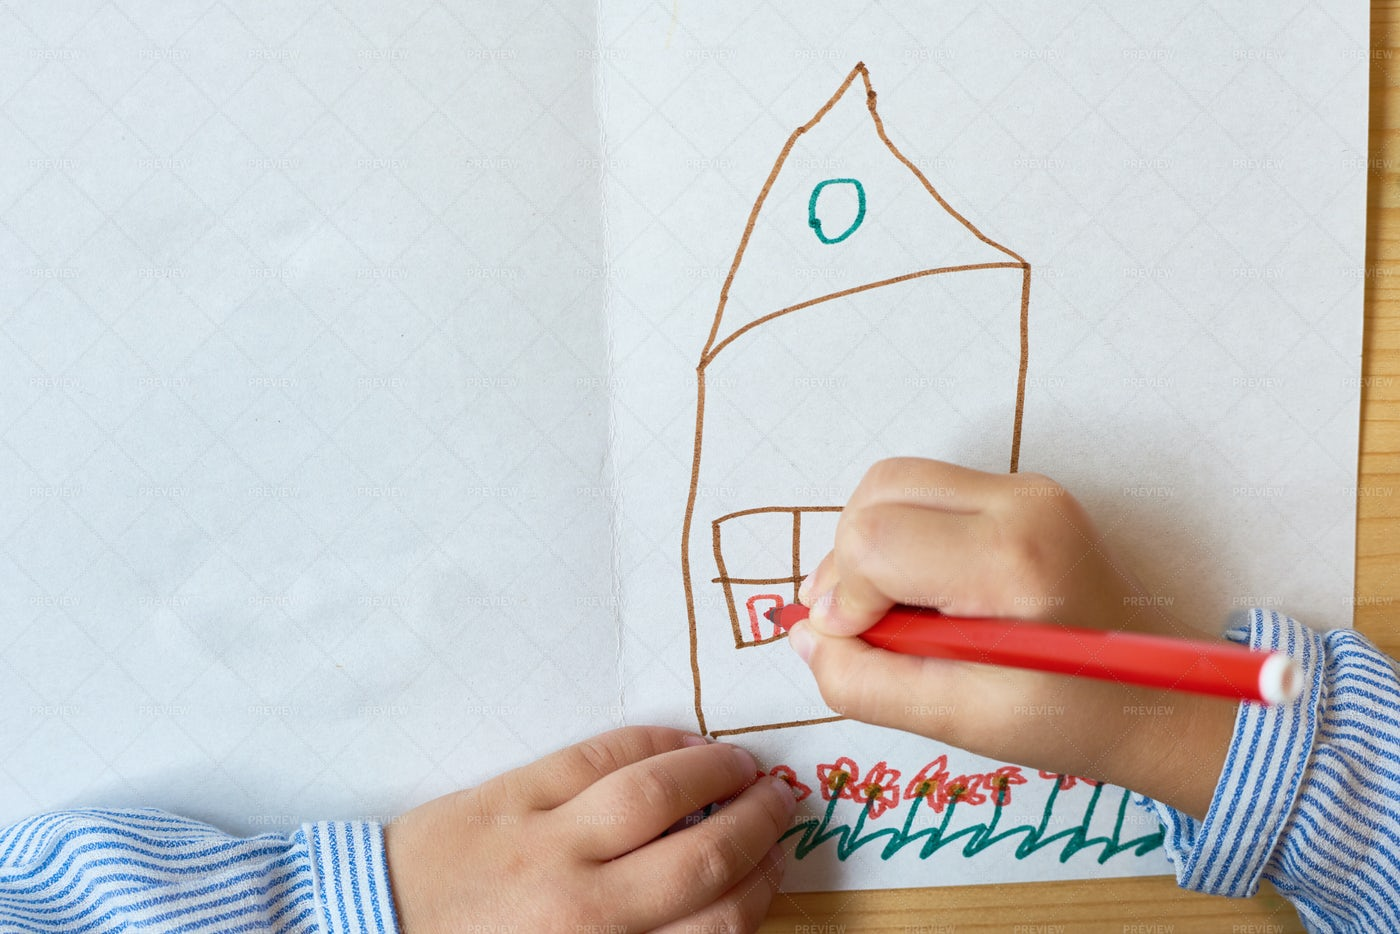 Little Child Drawing House: Stock Photos